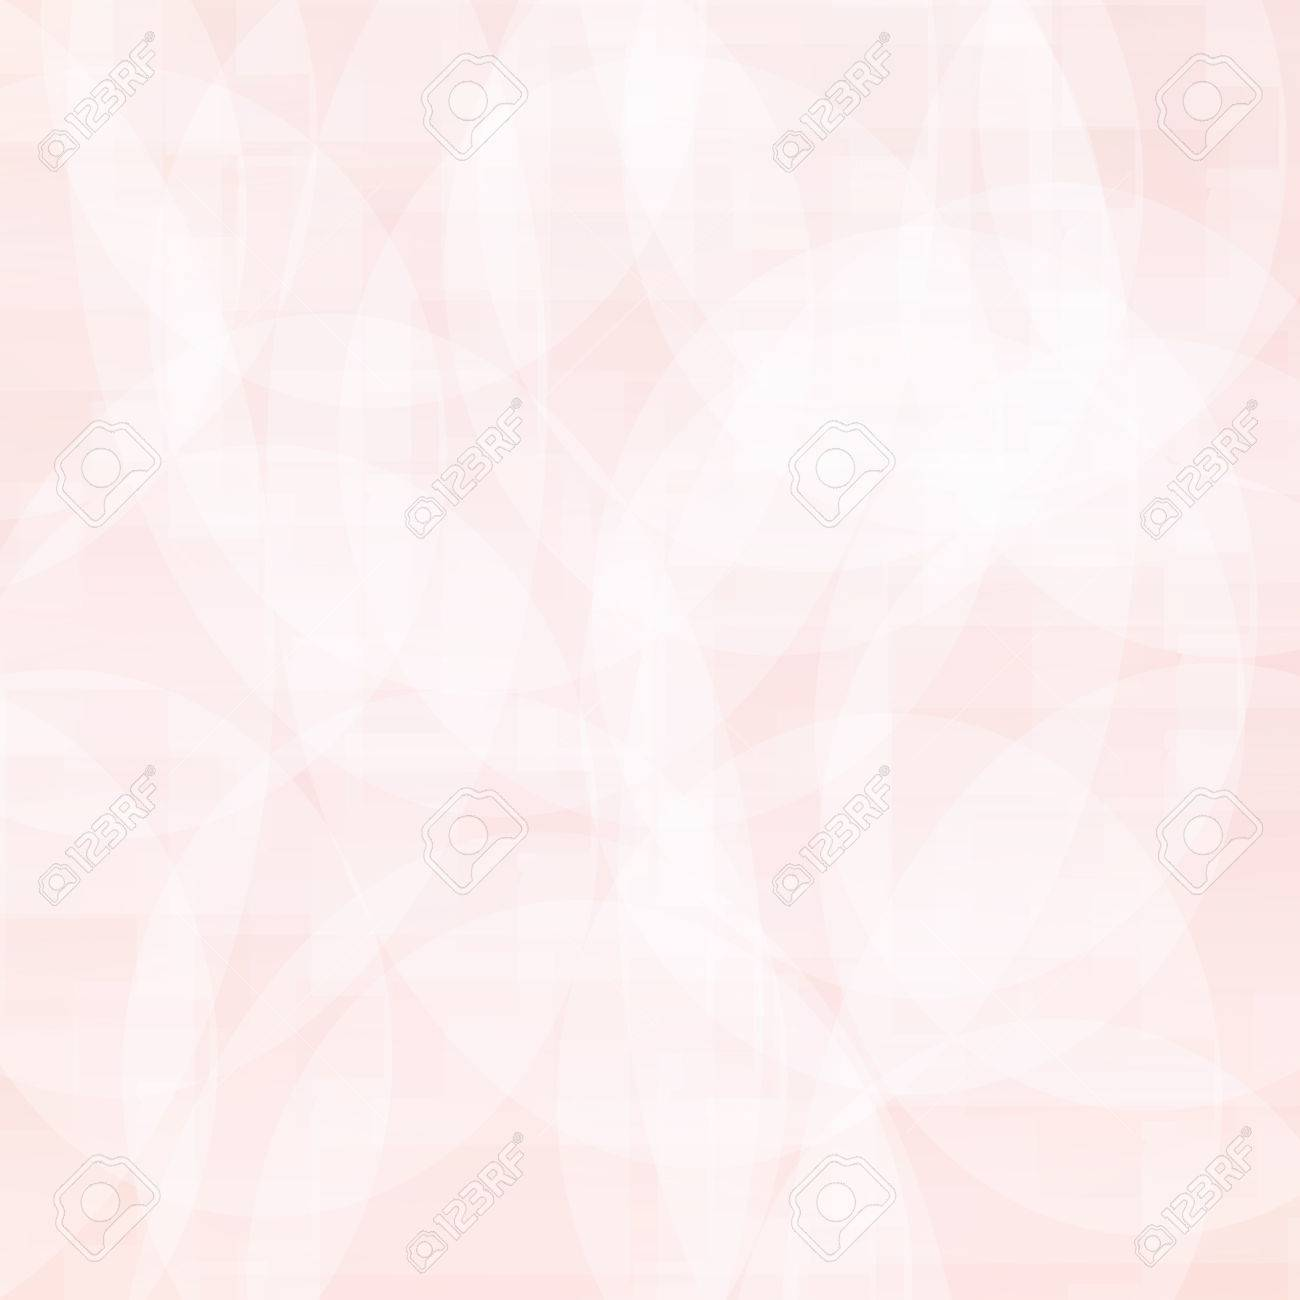 soft peach color background stock photo picture and royalty free image image 59356997 soft peach color background